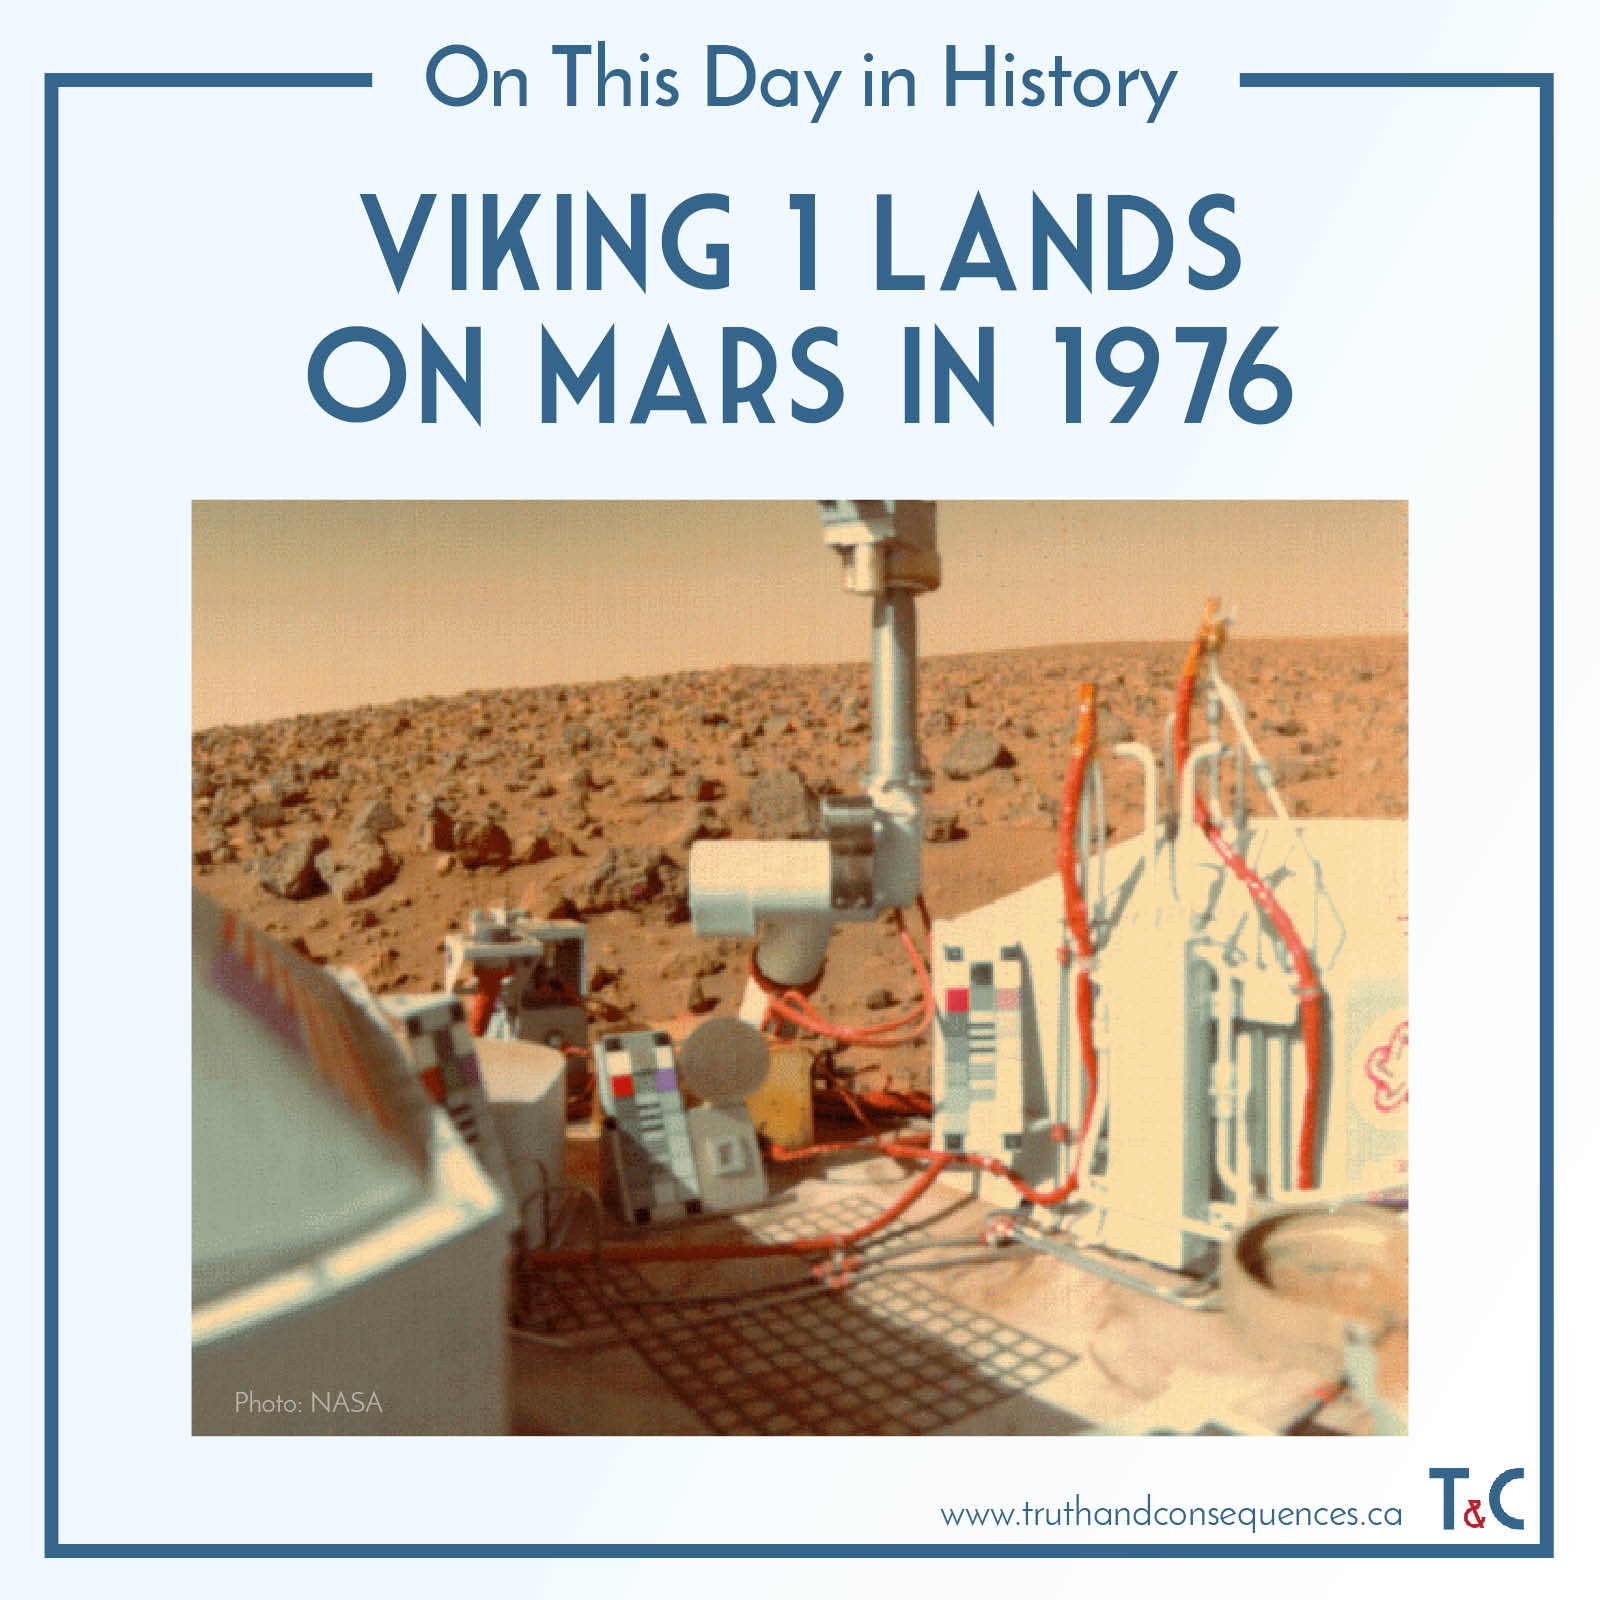 Viking 1 Lands on Mars in 1976